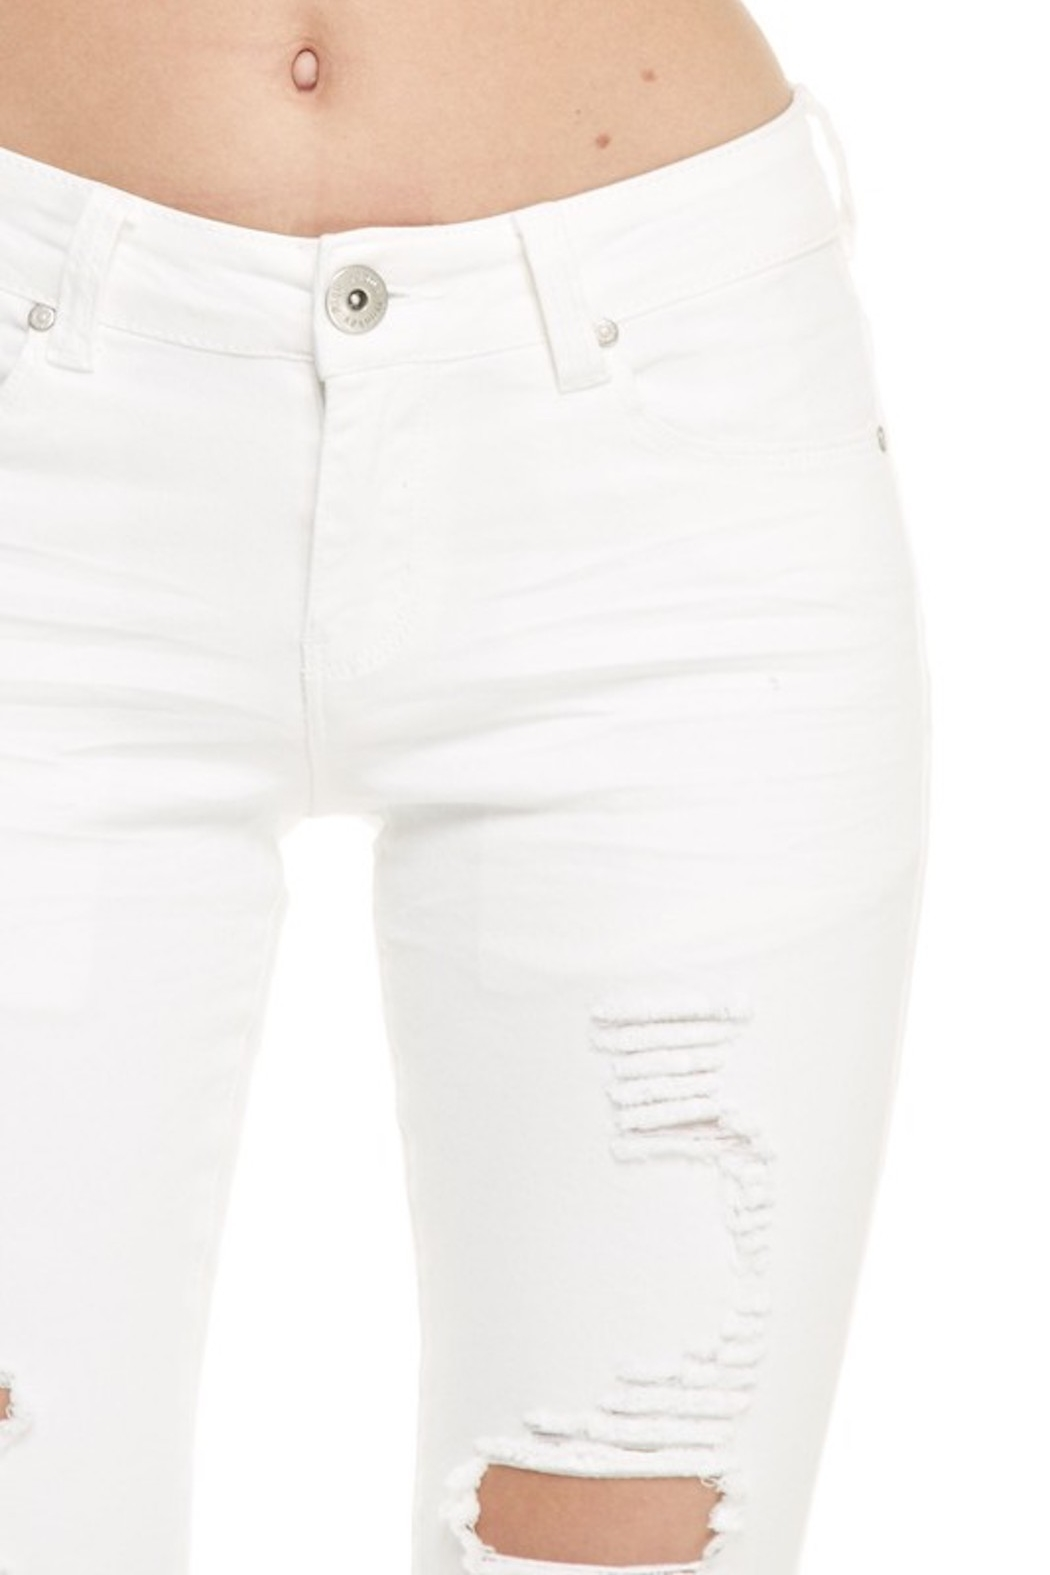 Monkey Ride Jeans Ripped Skinny Jeans - Back Cropped Image